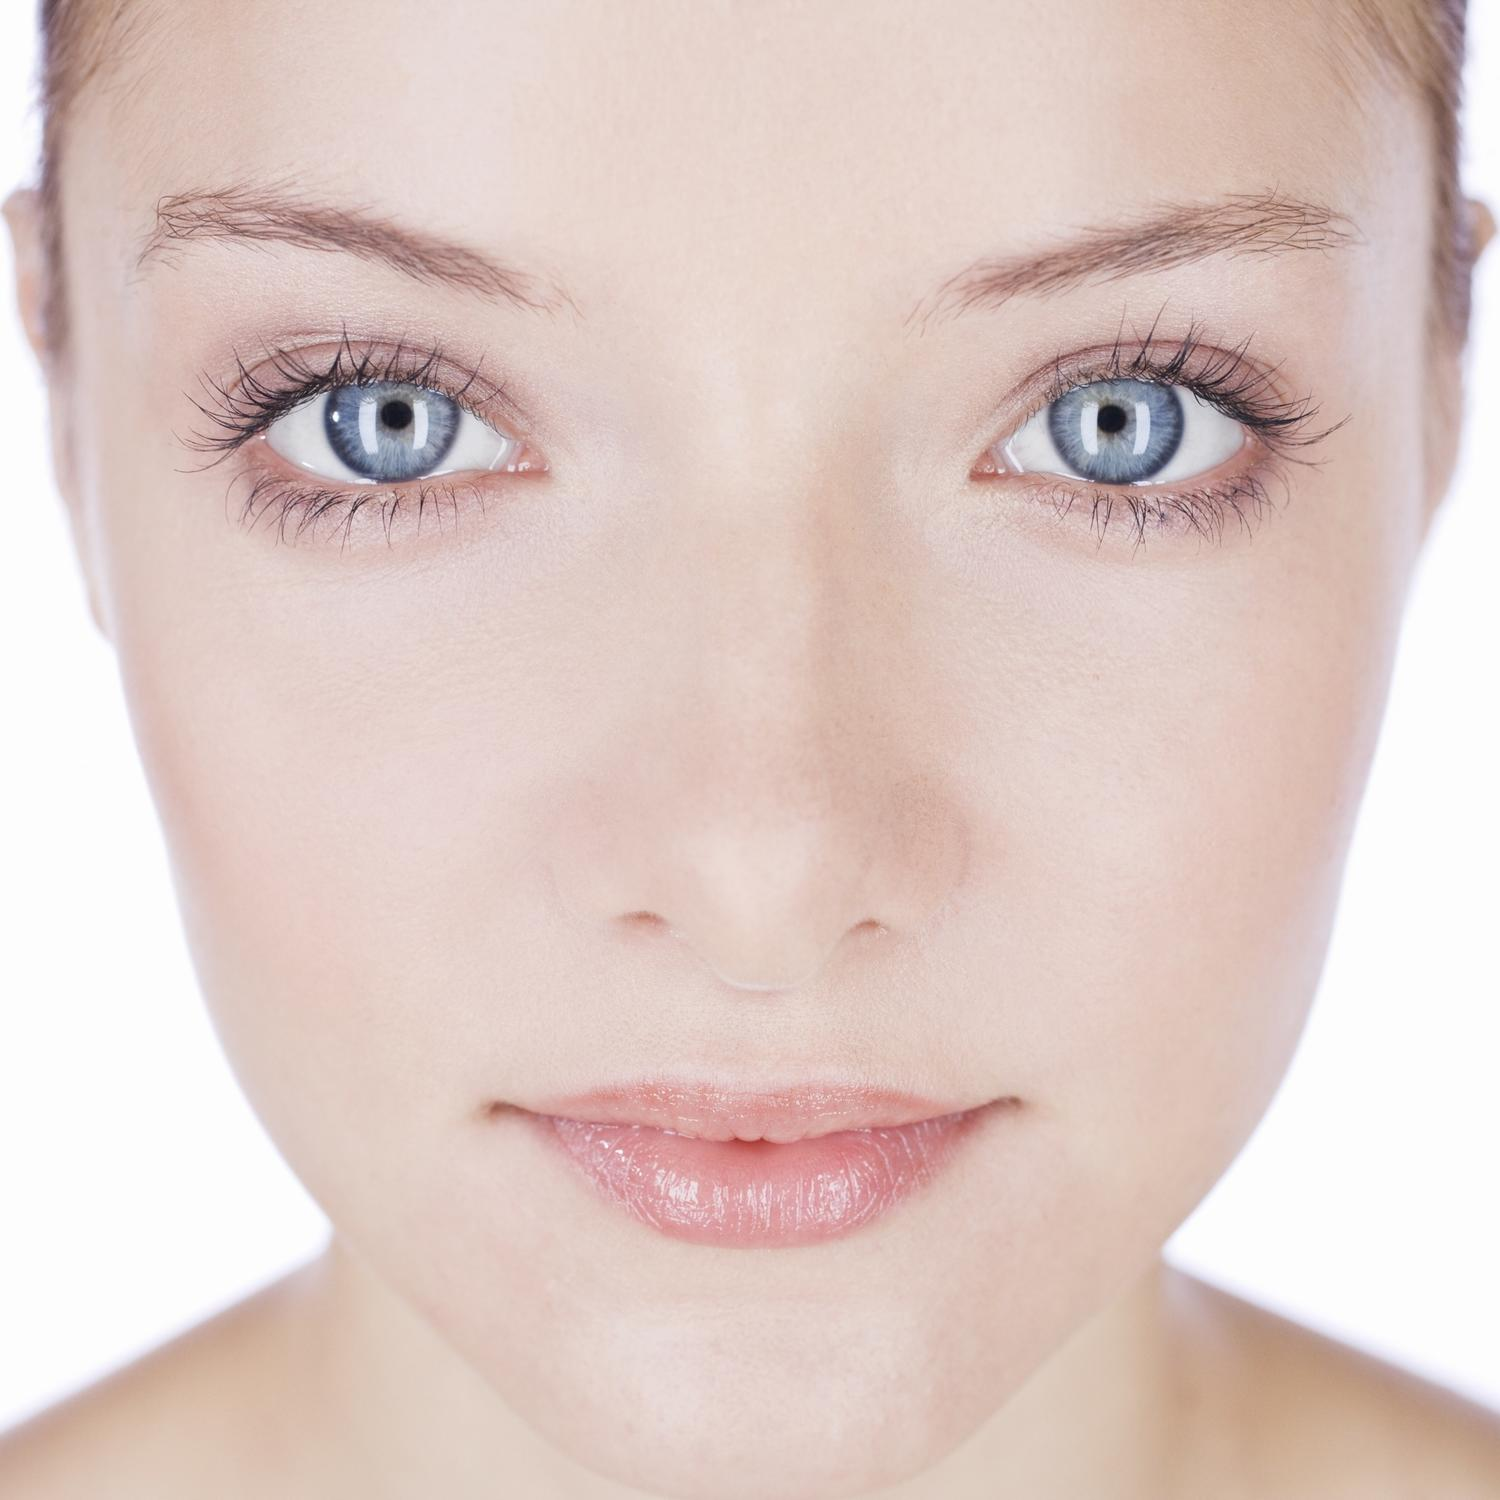 Beauty Tips: Makeup Products To Make You Look More Awake